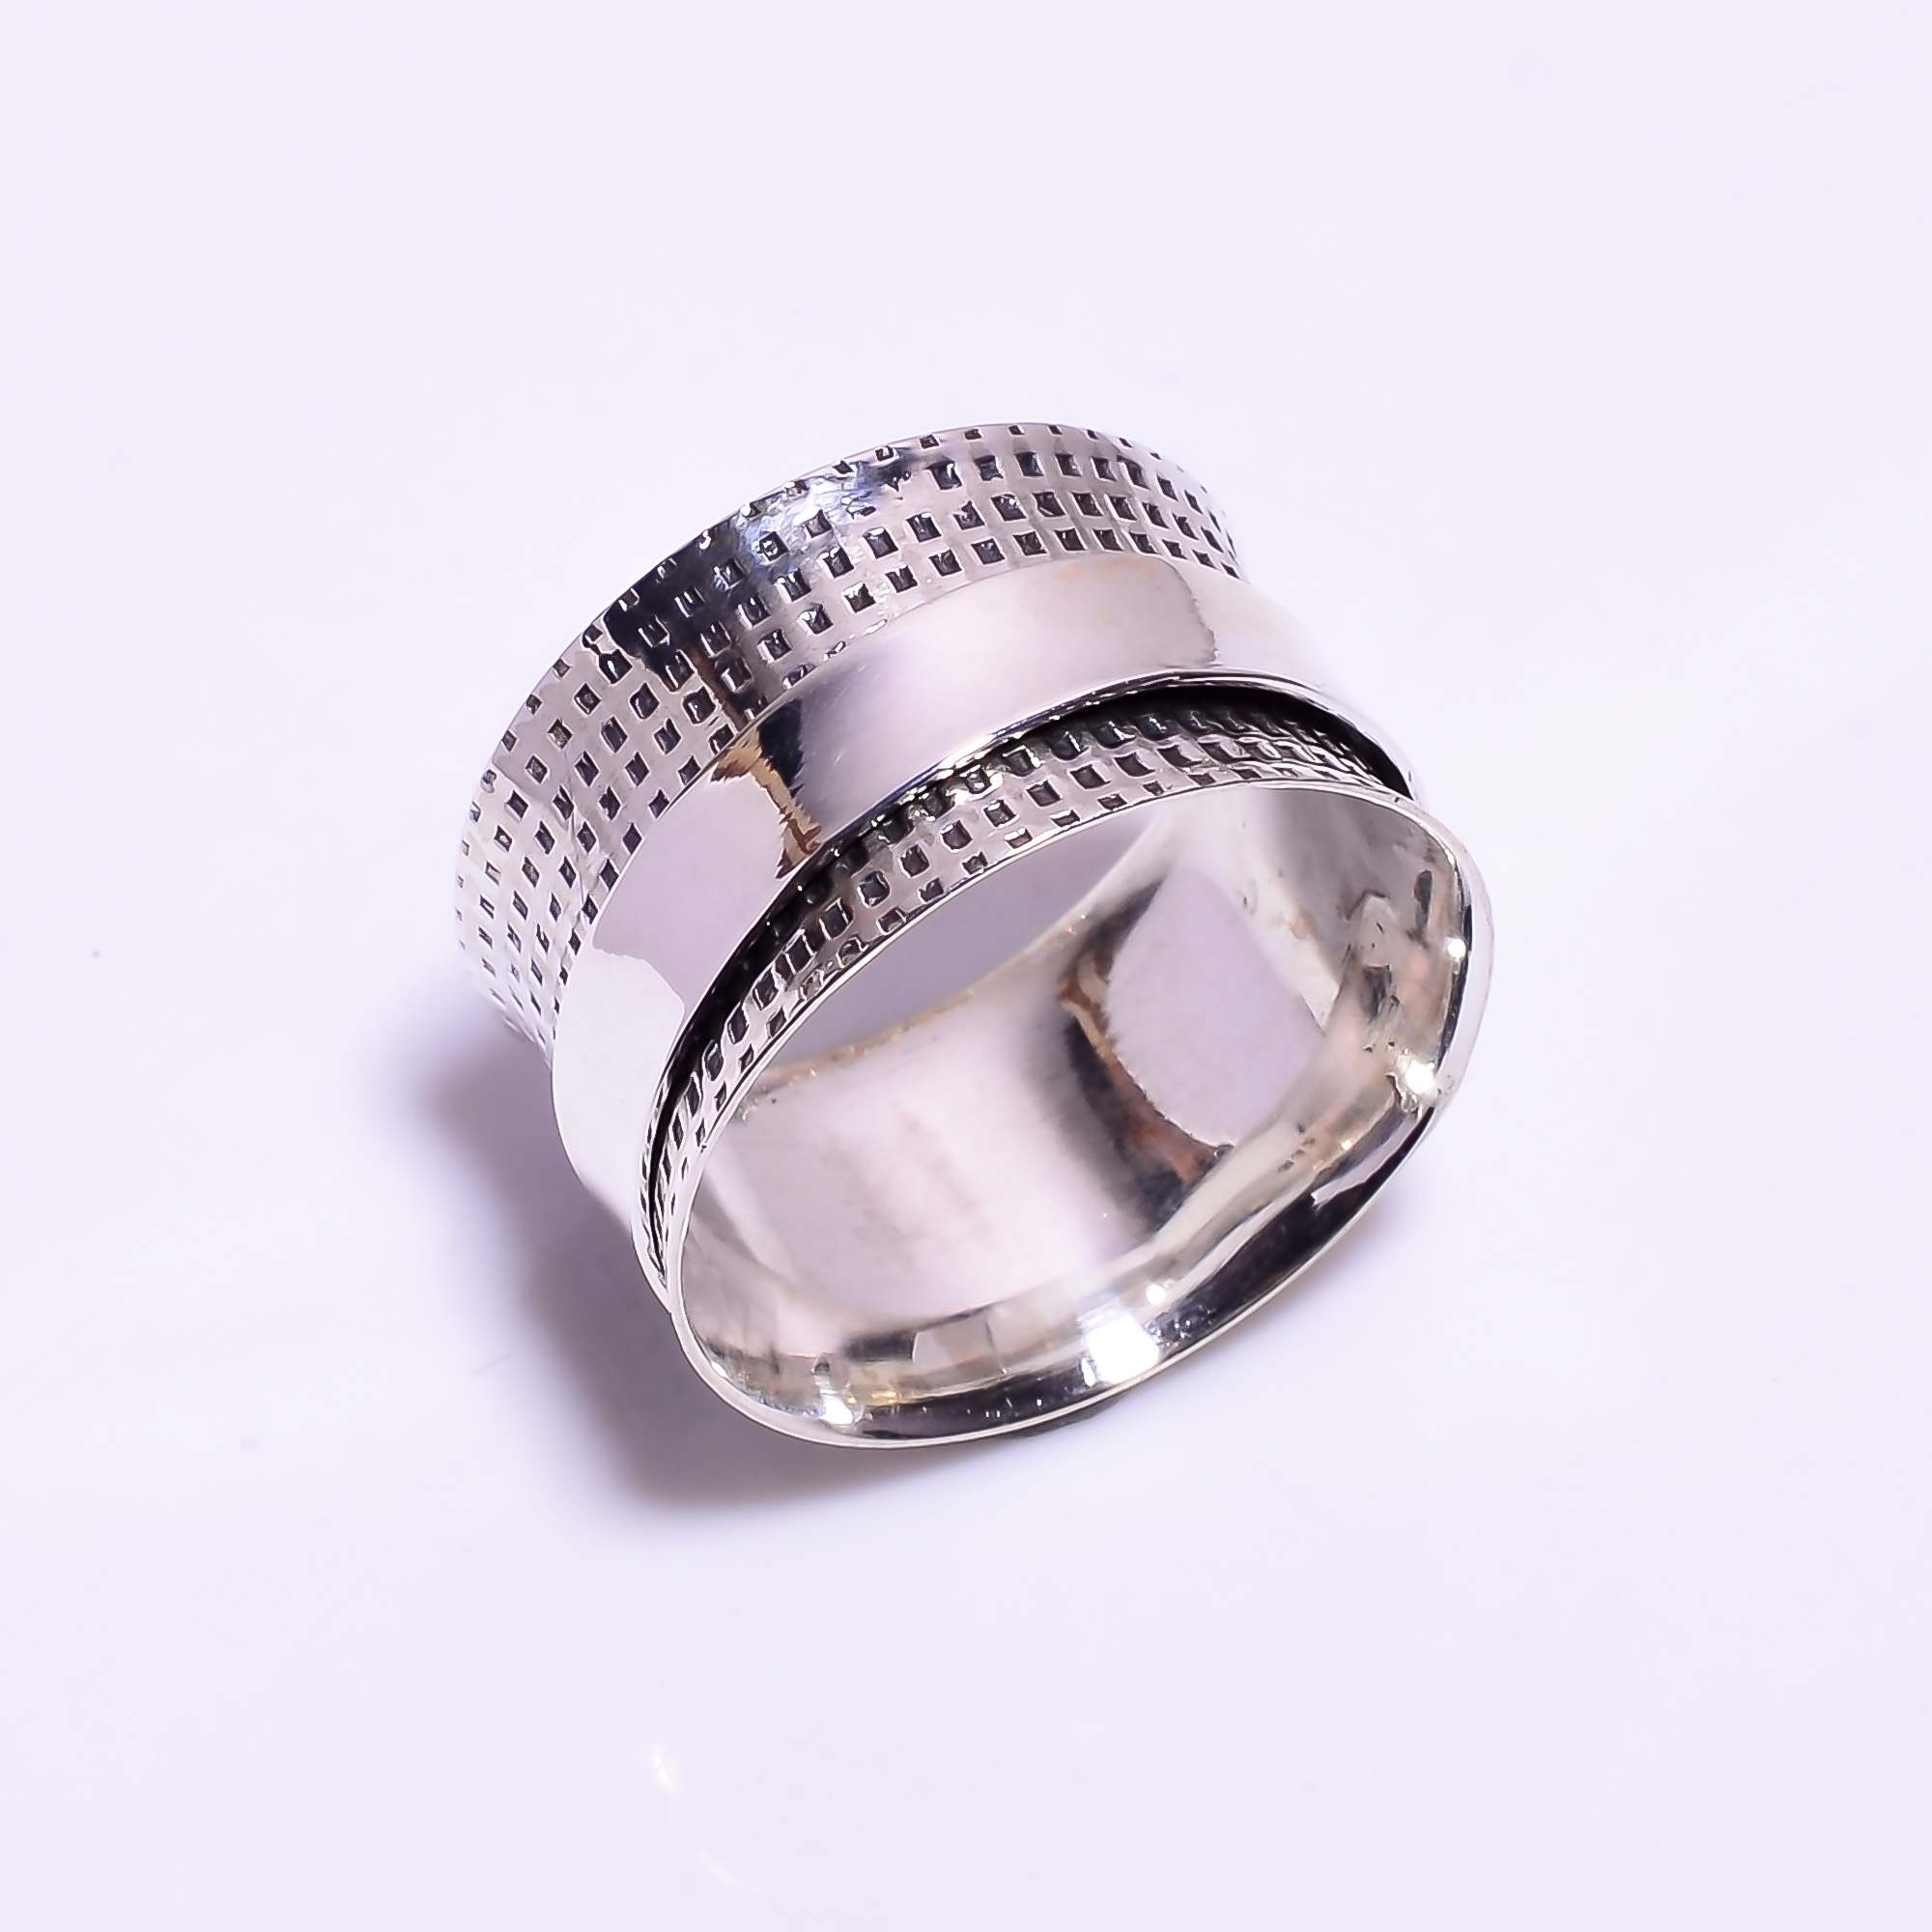 925 Sterling Silver Meditation Spinner Ring Size US 11.75